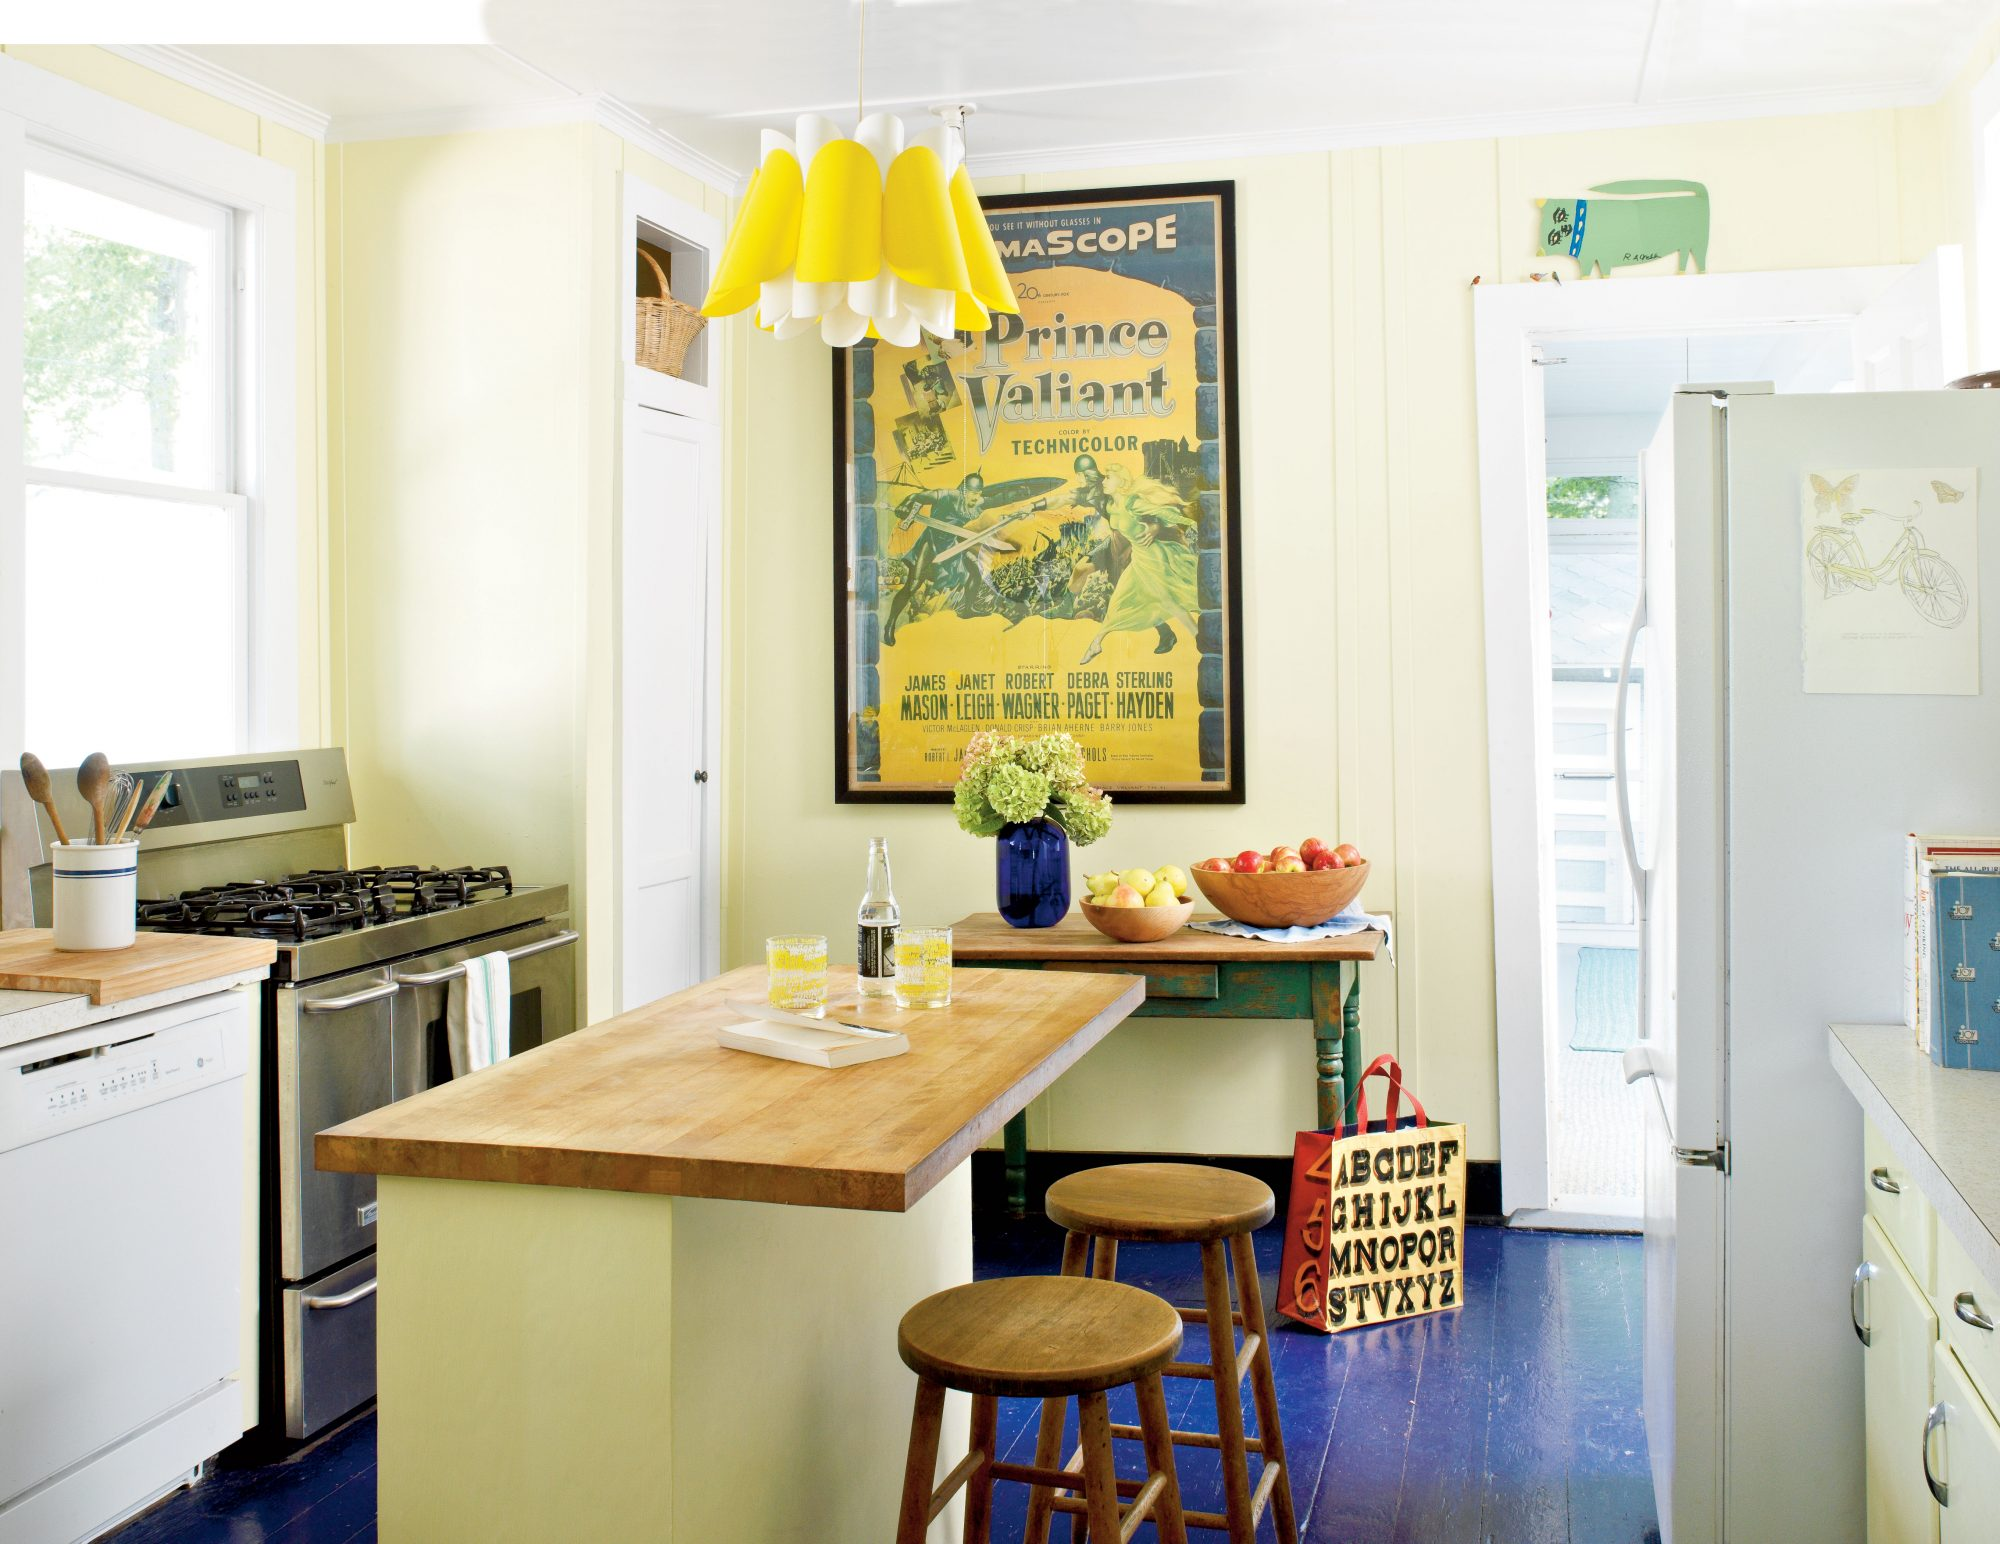 The charm of this lakeside cottage kitchen lies in its attention to detail. The previously linoleum-covered floors were ripped up in favor of this rich blue color, echoed again in a vase of hydrangeas. An ultramodern light fixture paired with the old-school movie poster is a refreshing mix of old and new.